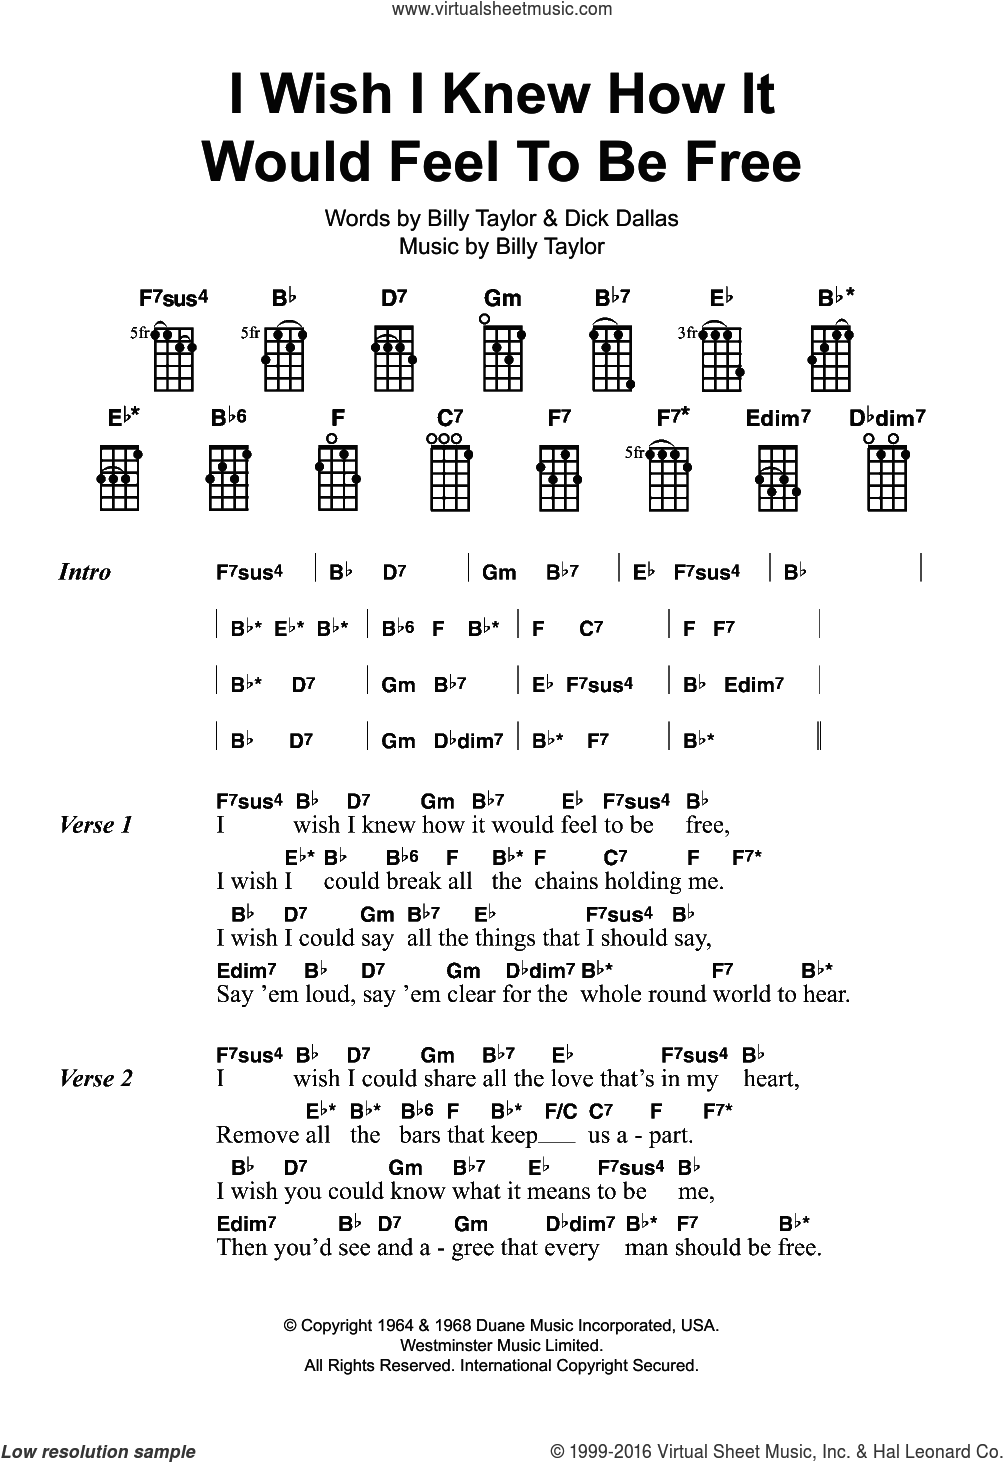 I Wish I Knew How It Would Feel To Be Free sheet music for ukulele by Billy Taylor, Nina Simone and Dick Dallas, intermediate skill level